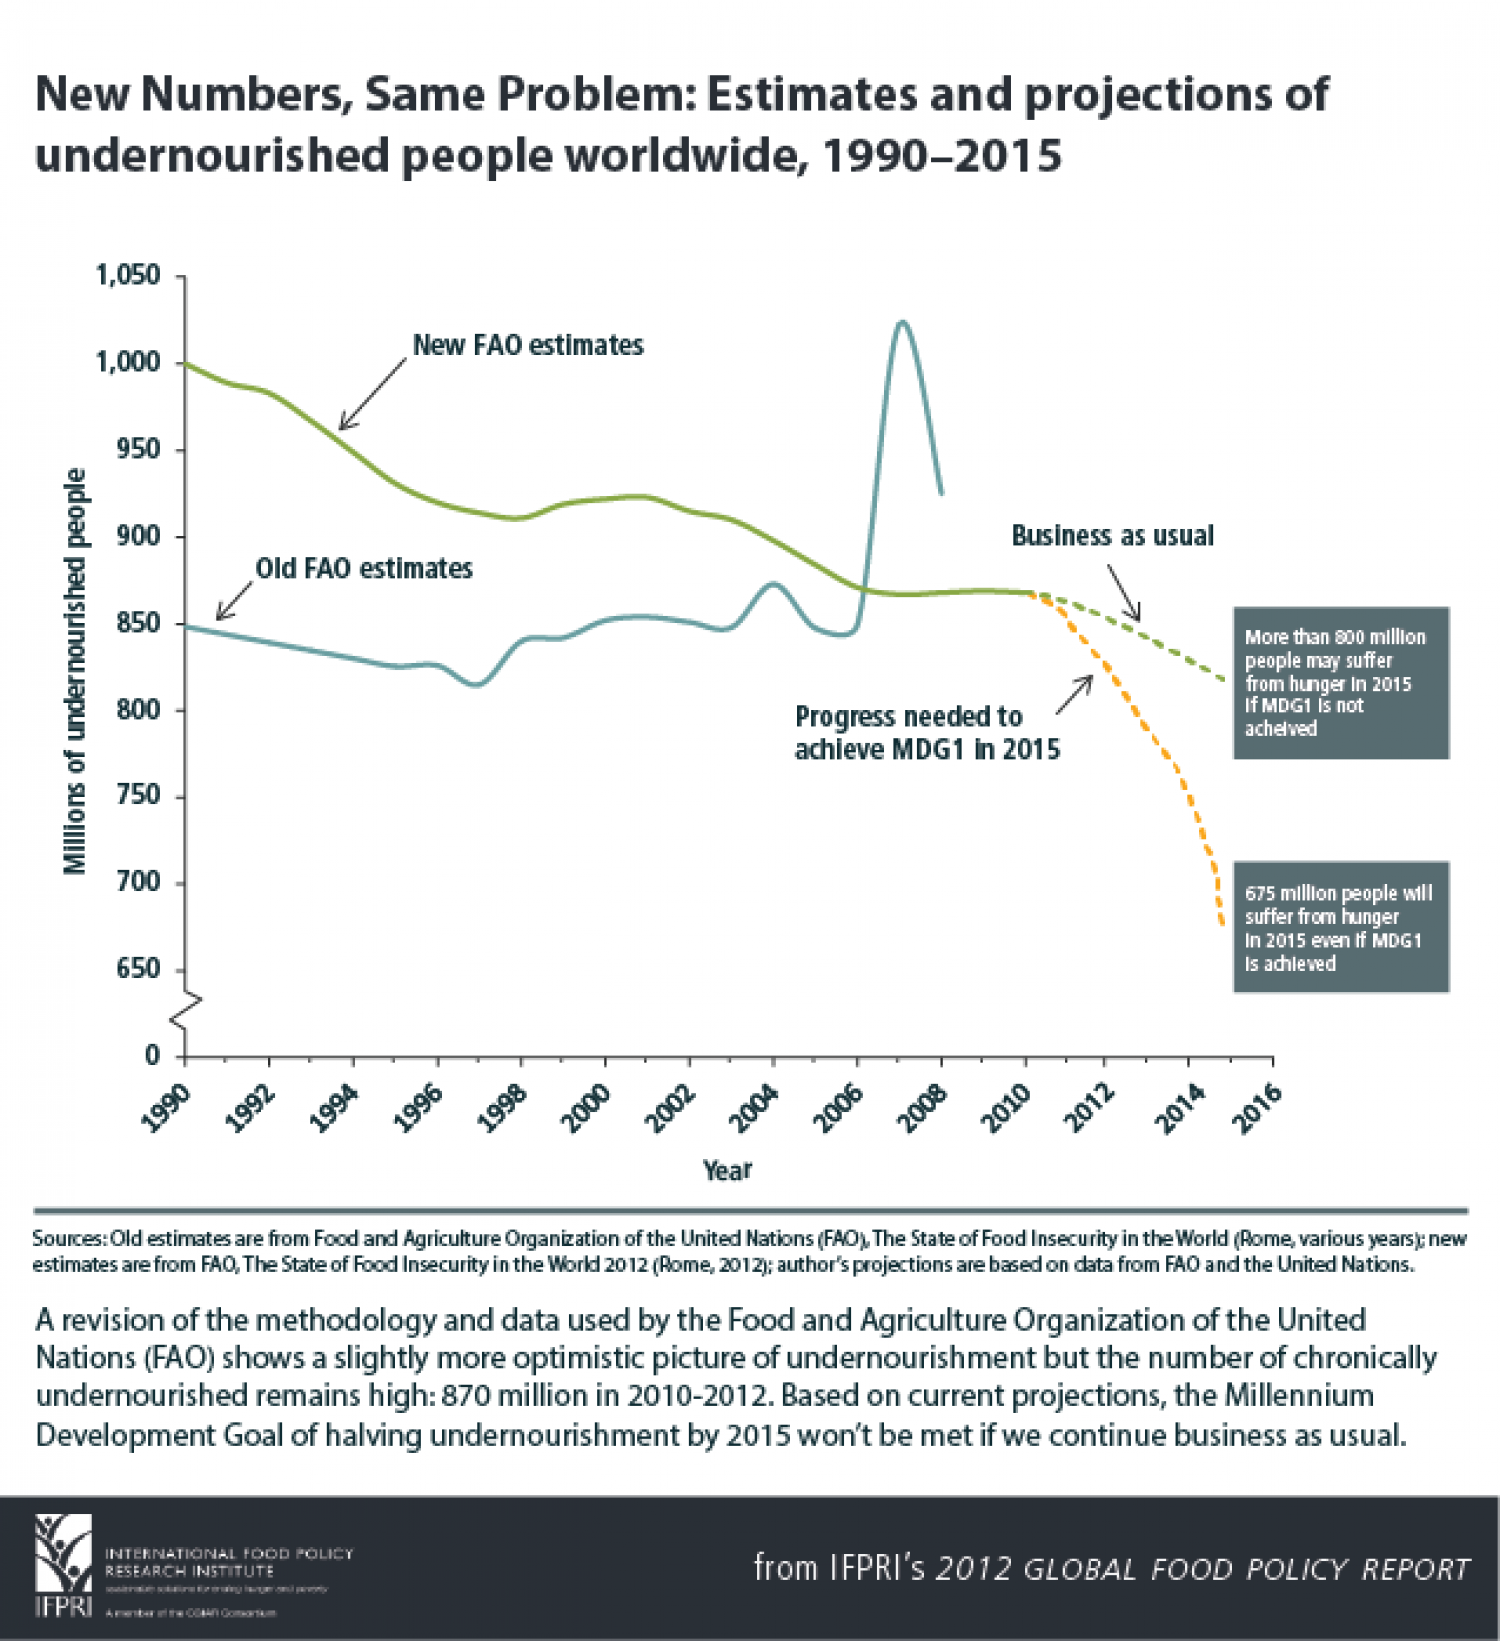 Estimates and Projections of Undernourished People Worldwide, 1990-2015 Infographic